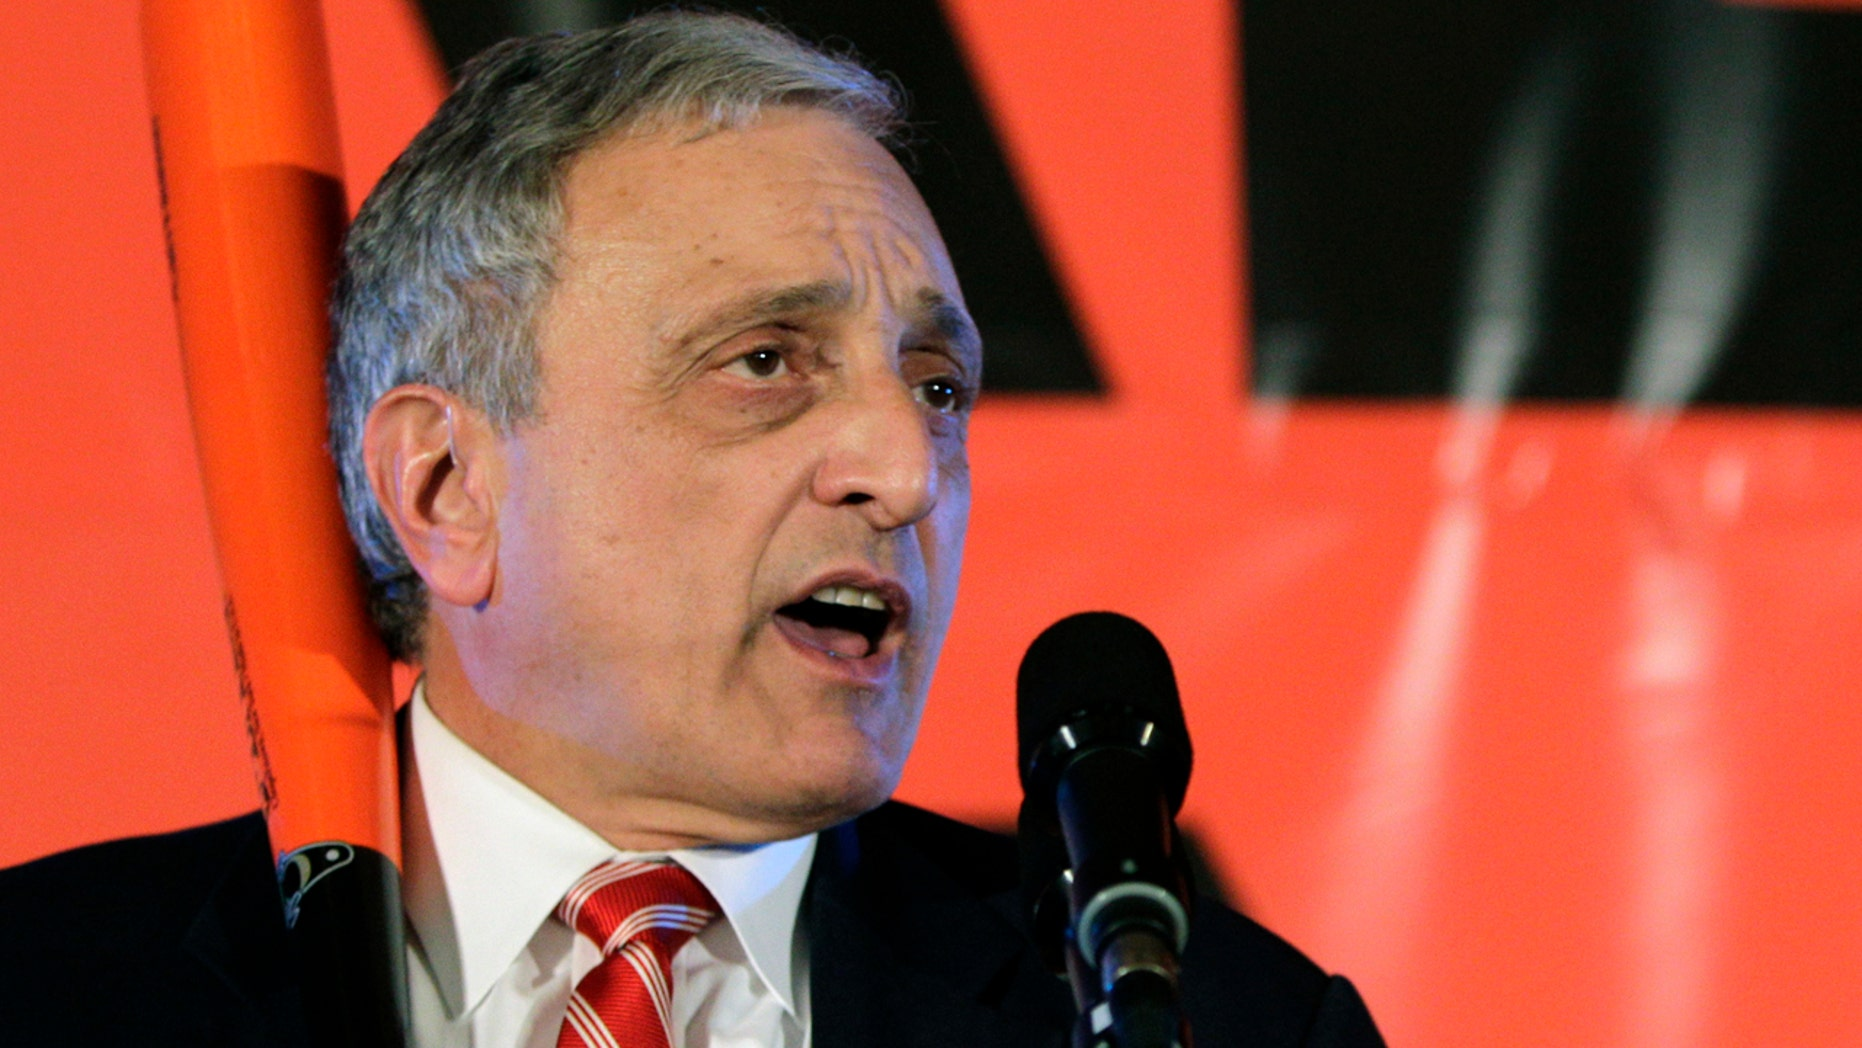 In this Nov. 2, 2010, file photo, Republican gubernatorial candidate Carl Paladino holds a baseball bat as he concedes the election in Buffalo, N.Y.